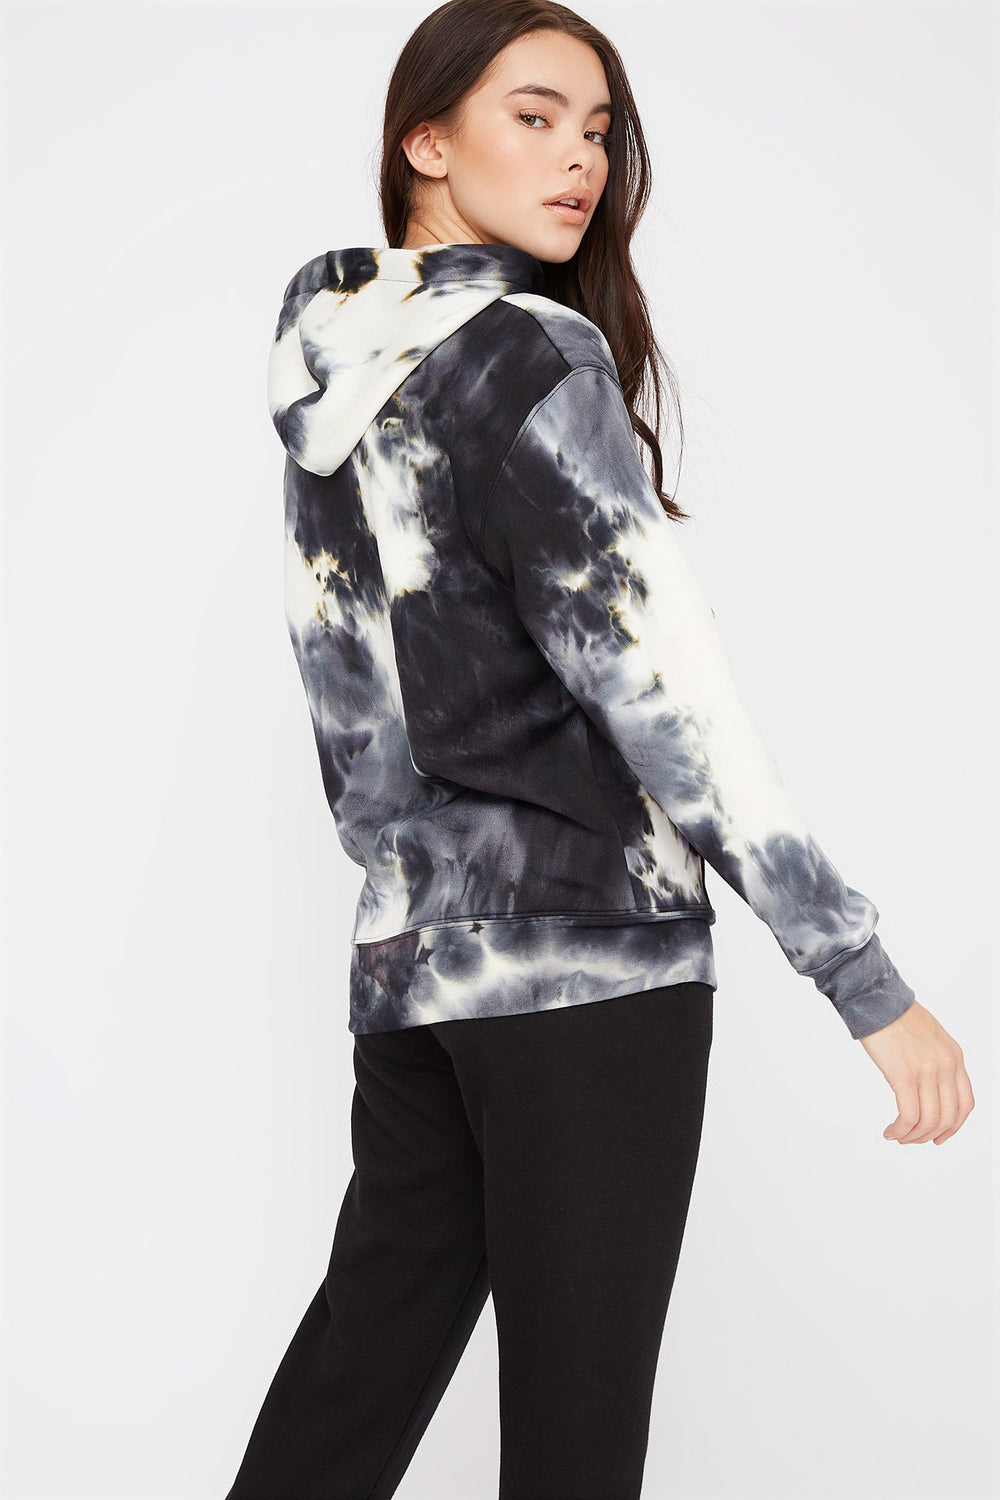 Graphic Tie Dye Boyfriend Hoodie Black with White